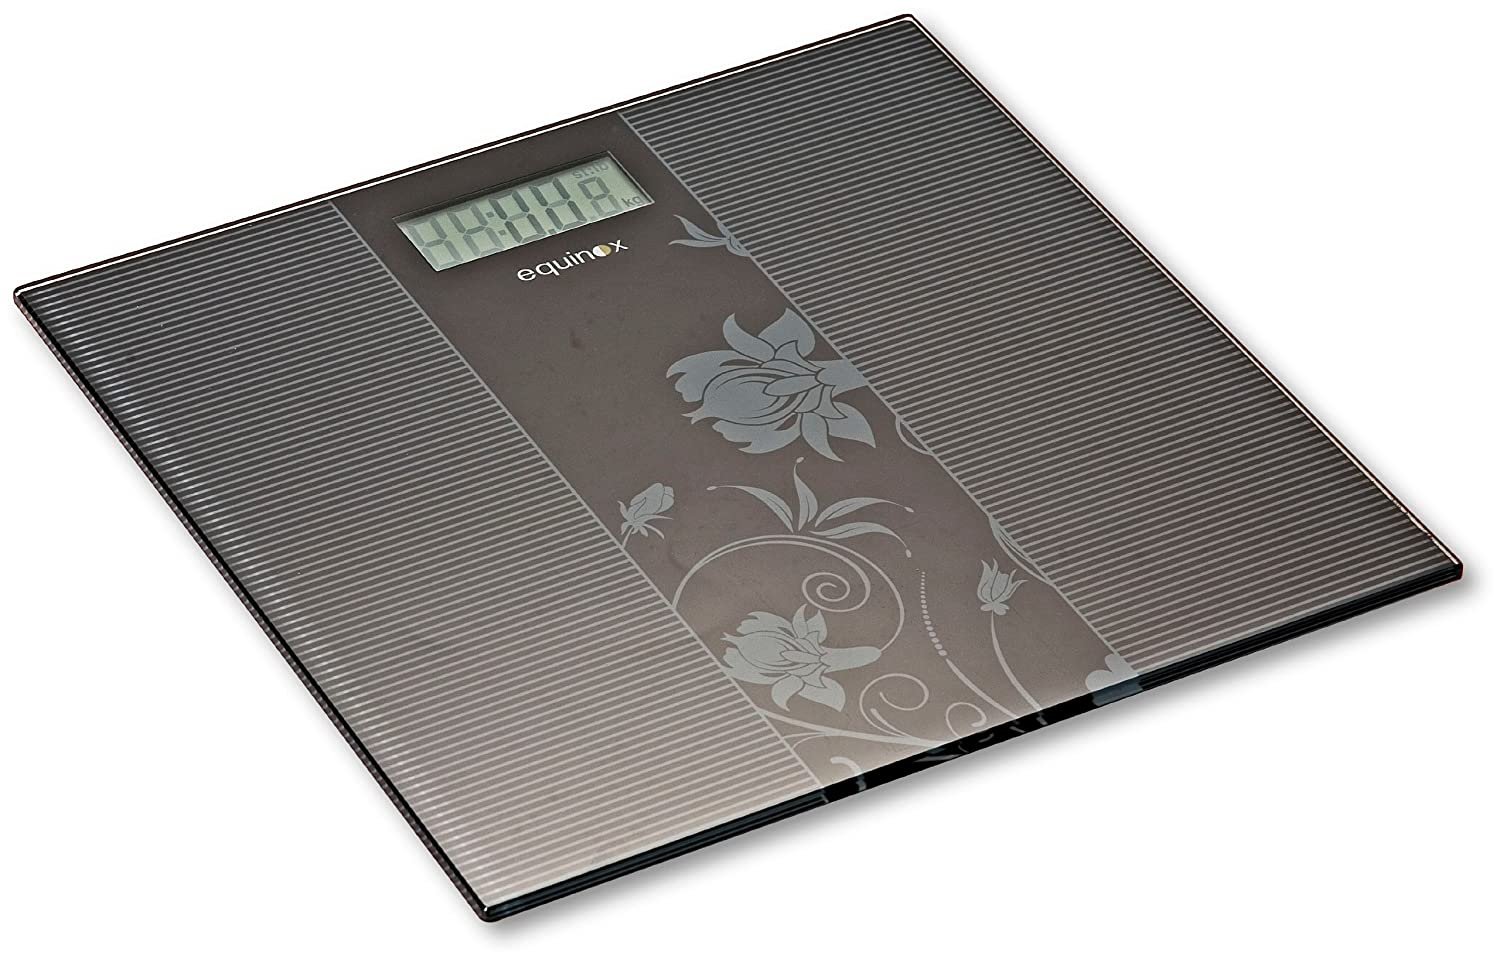 Equinox EB-9300 Weighing Scale at Rs 995 from Amazon - 58% Off